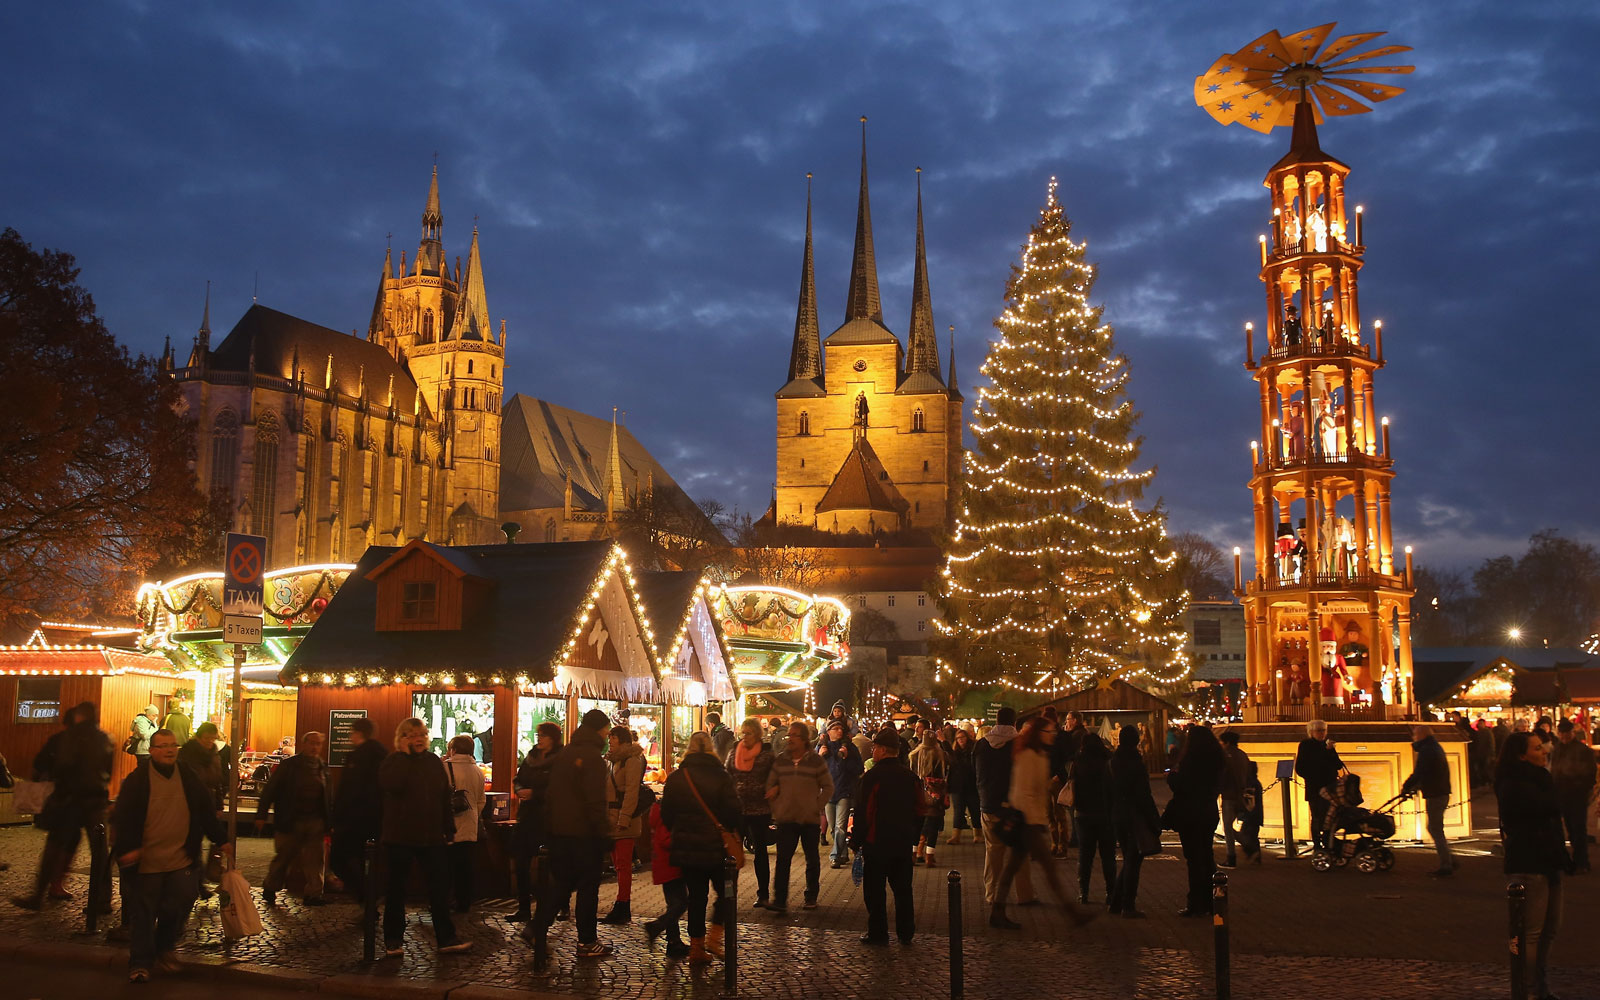 Europe at Higher Risk for Terrorism During Christmas Season, State Department Warns